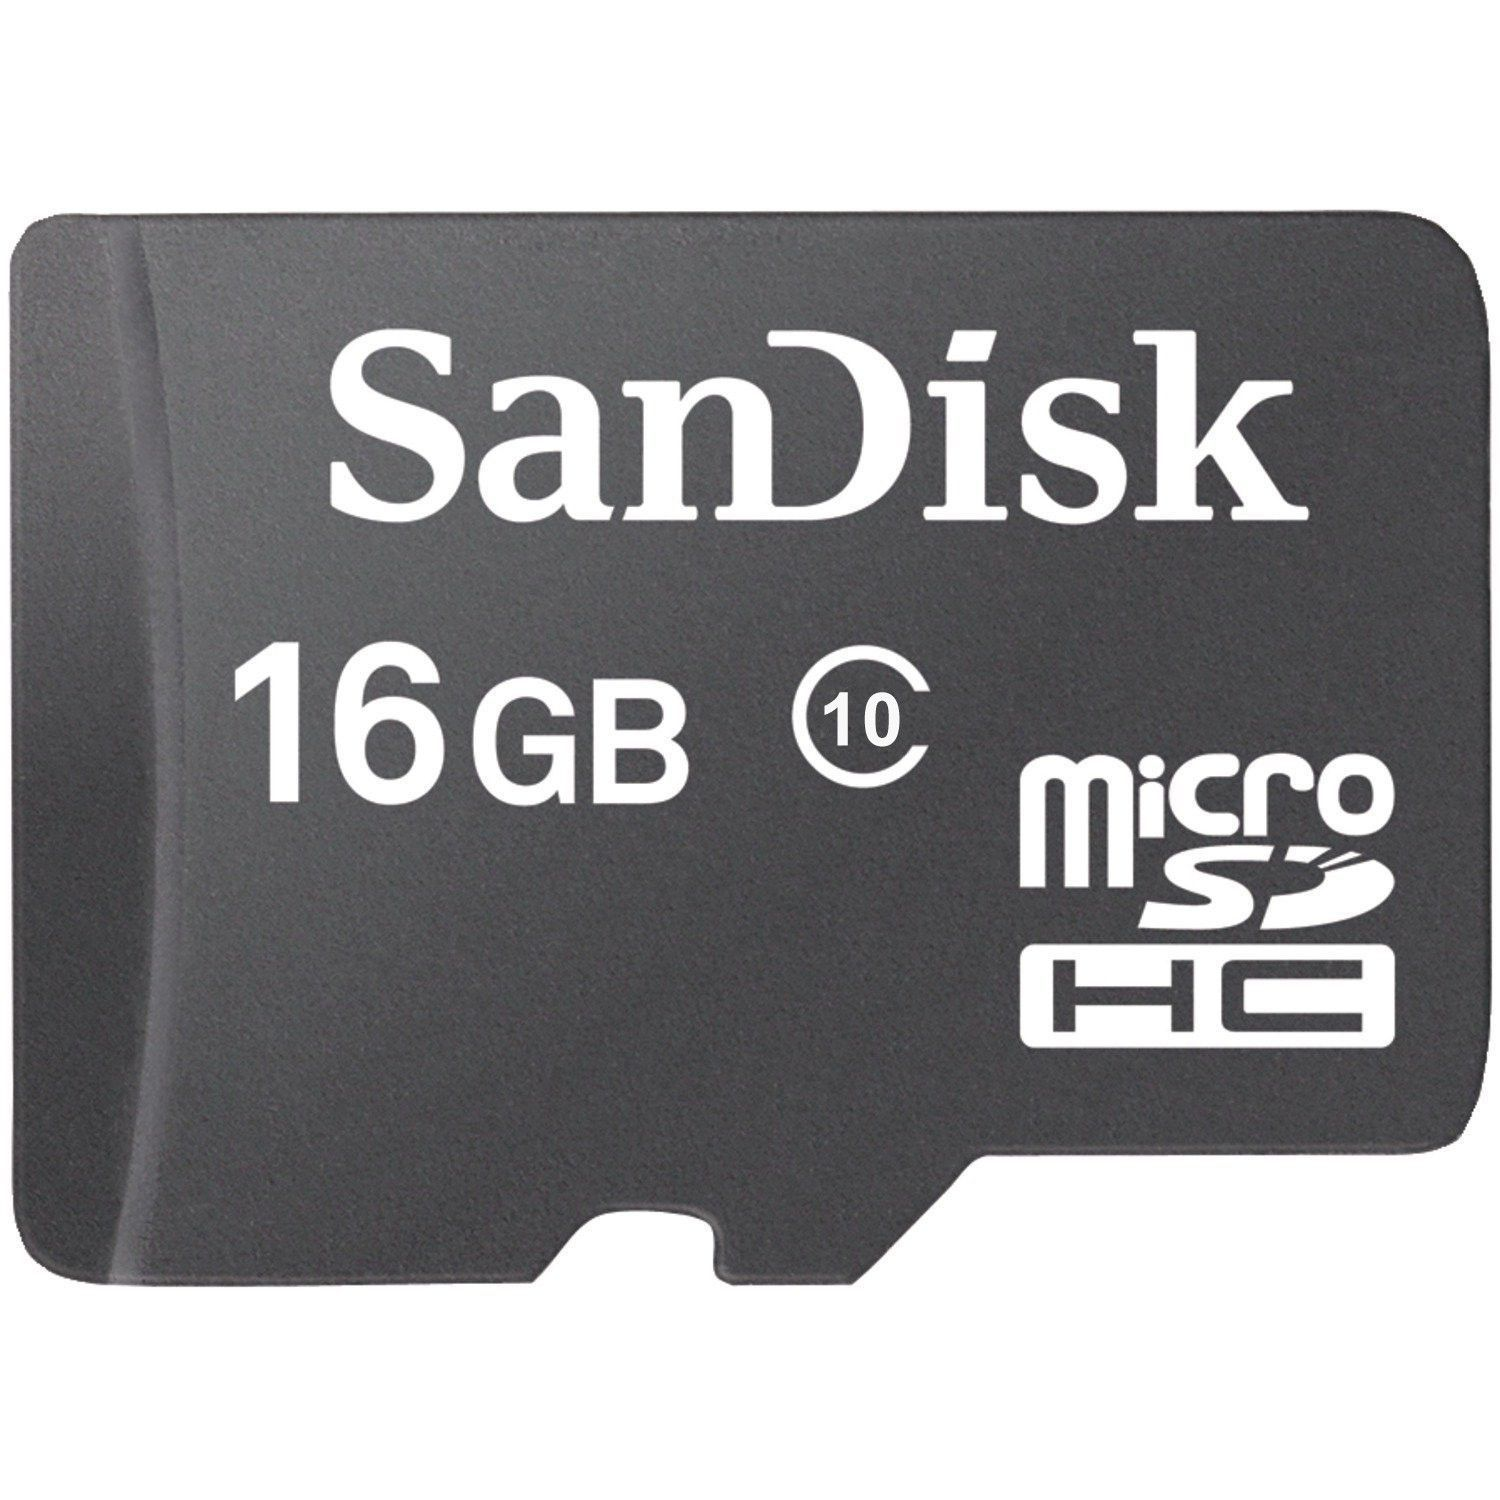 Sandisk 16gb Memory Card Class 10 Ultra Micro Sd Sdhc Speed 80mb S Uhs 1 16 Gb